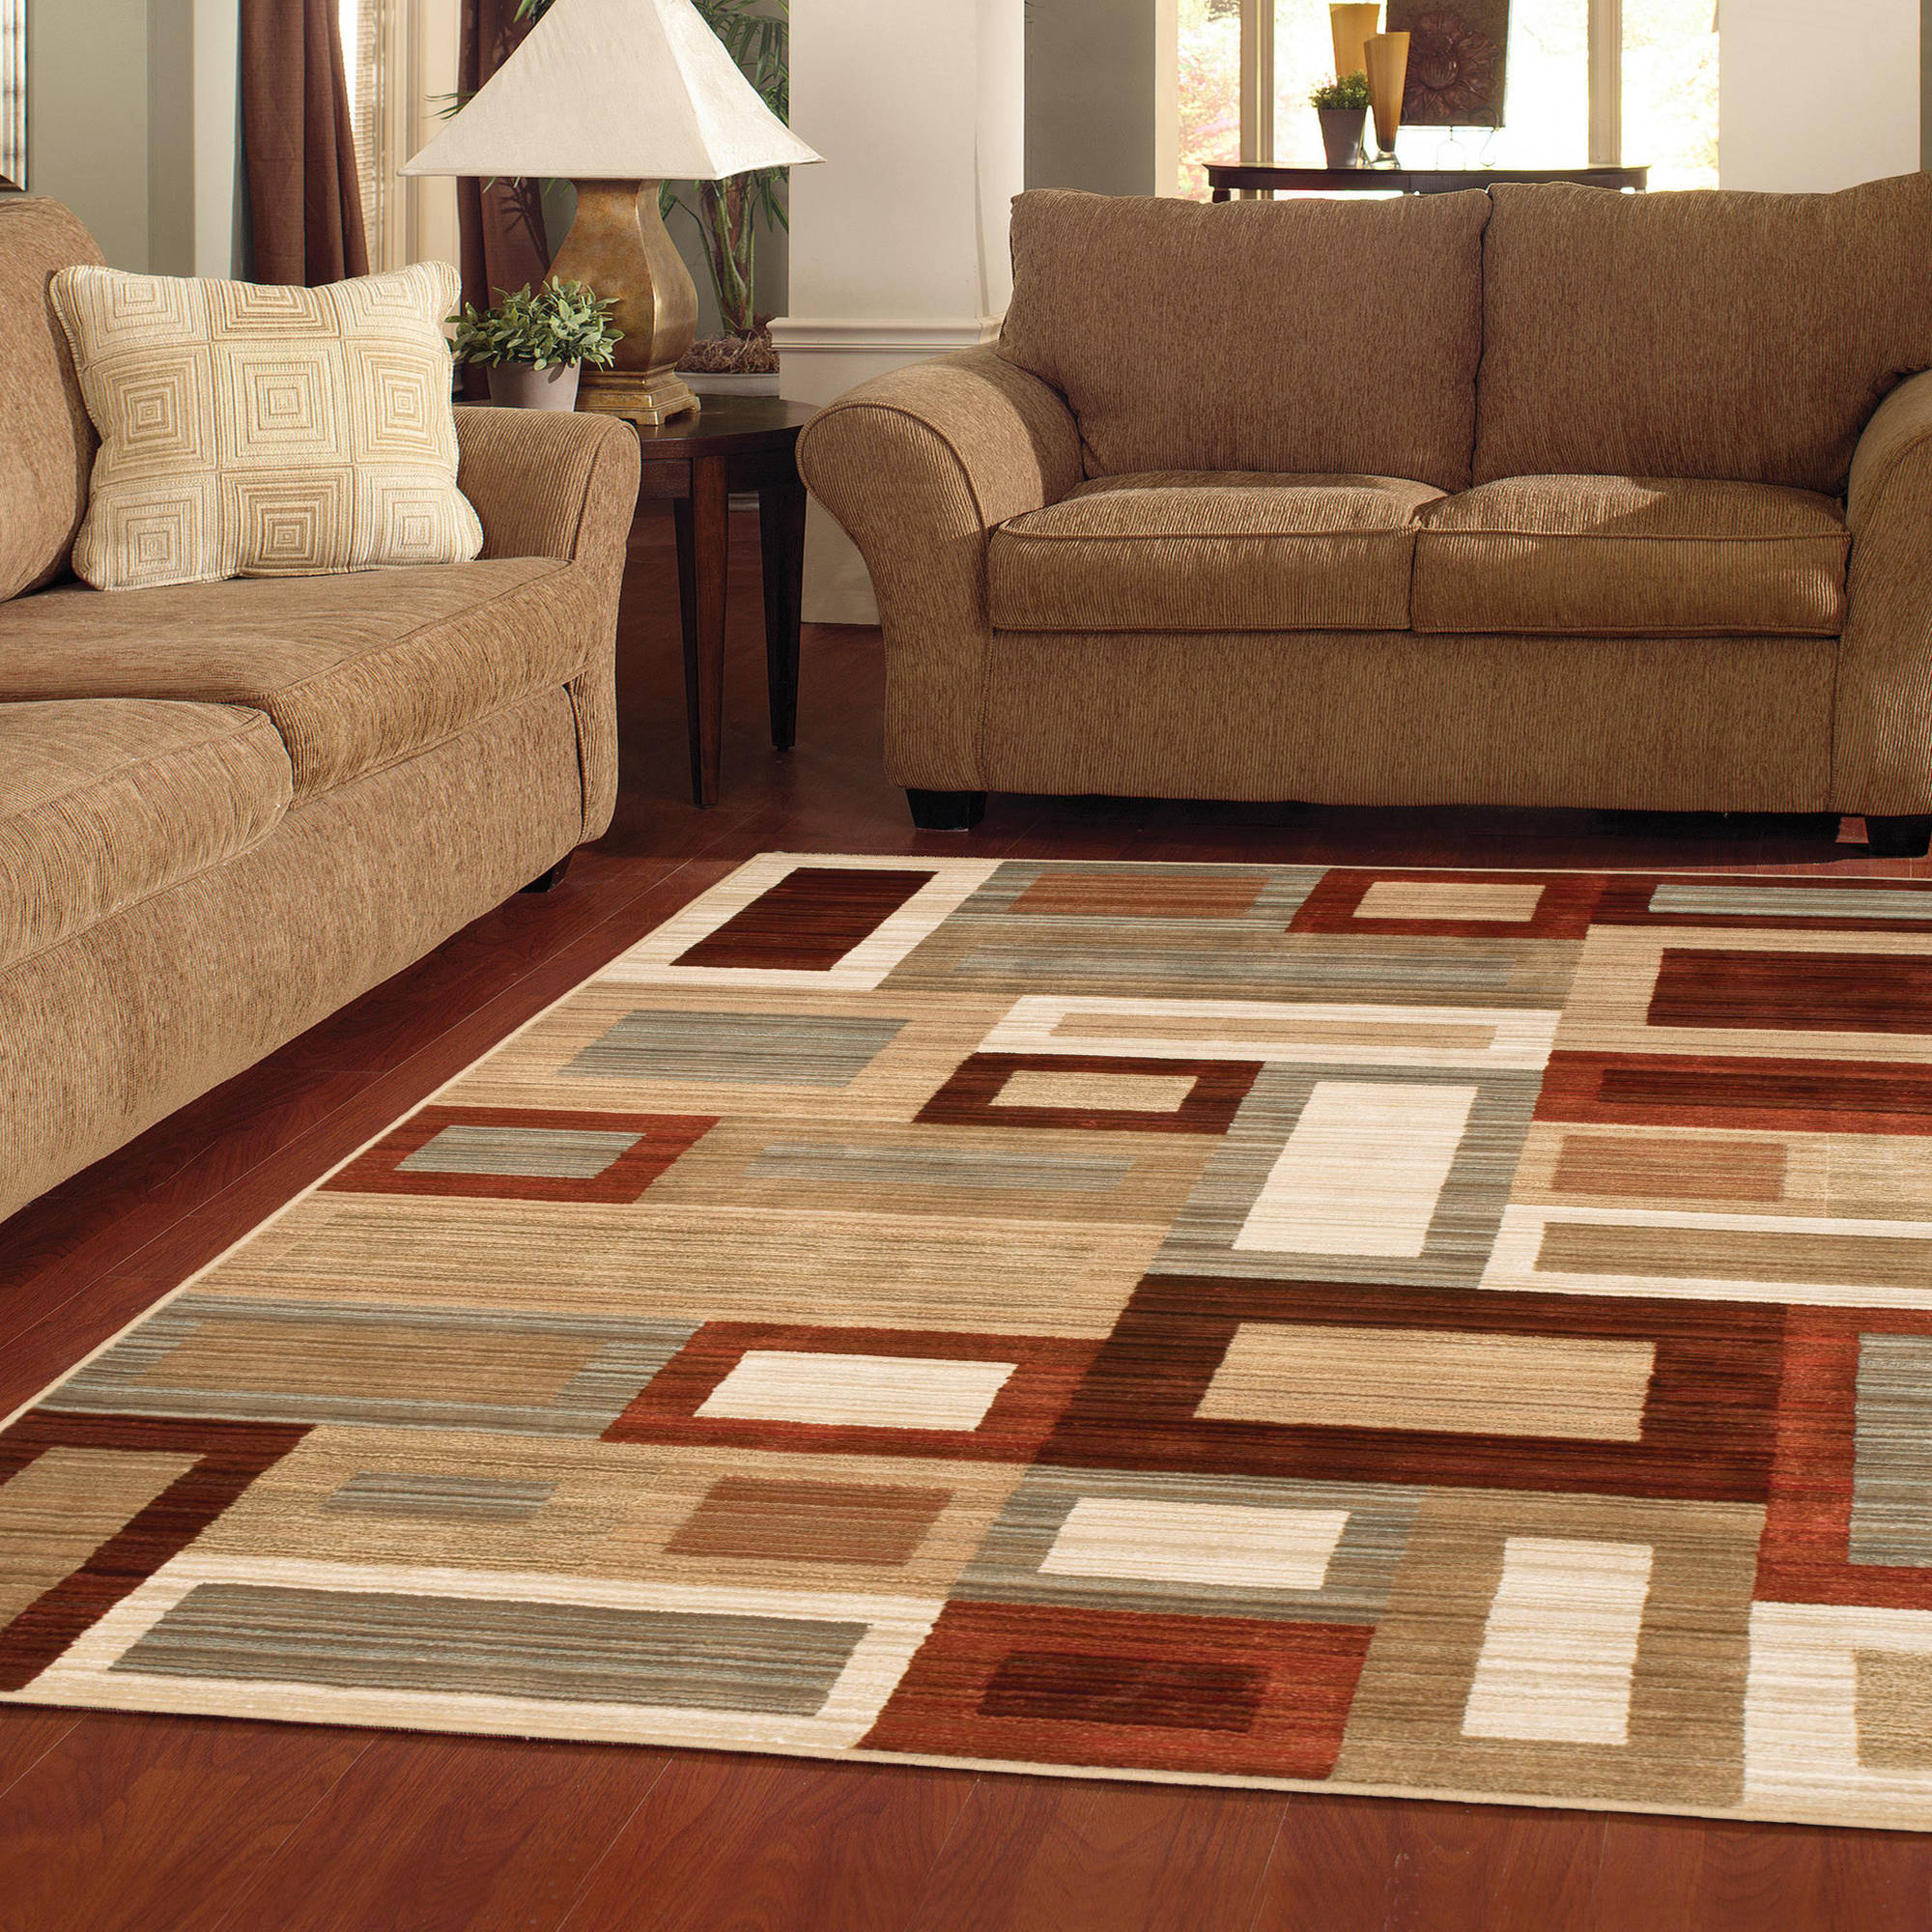 home rugs better homes and gardens franklin squares area rug or runner - walmart.com ITOEPQA